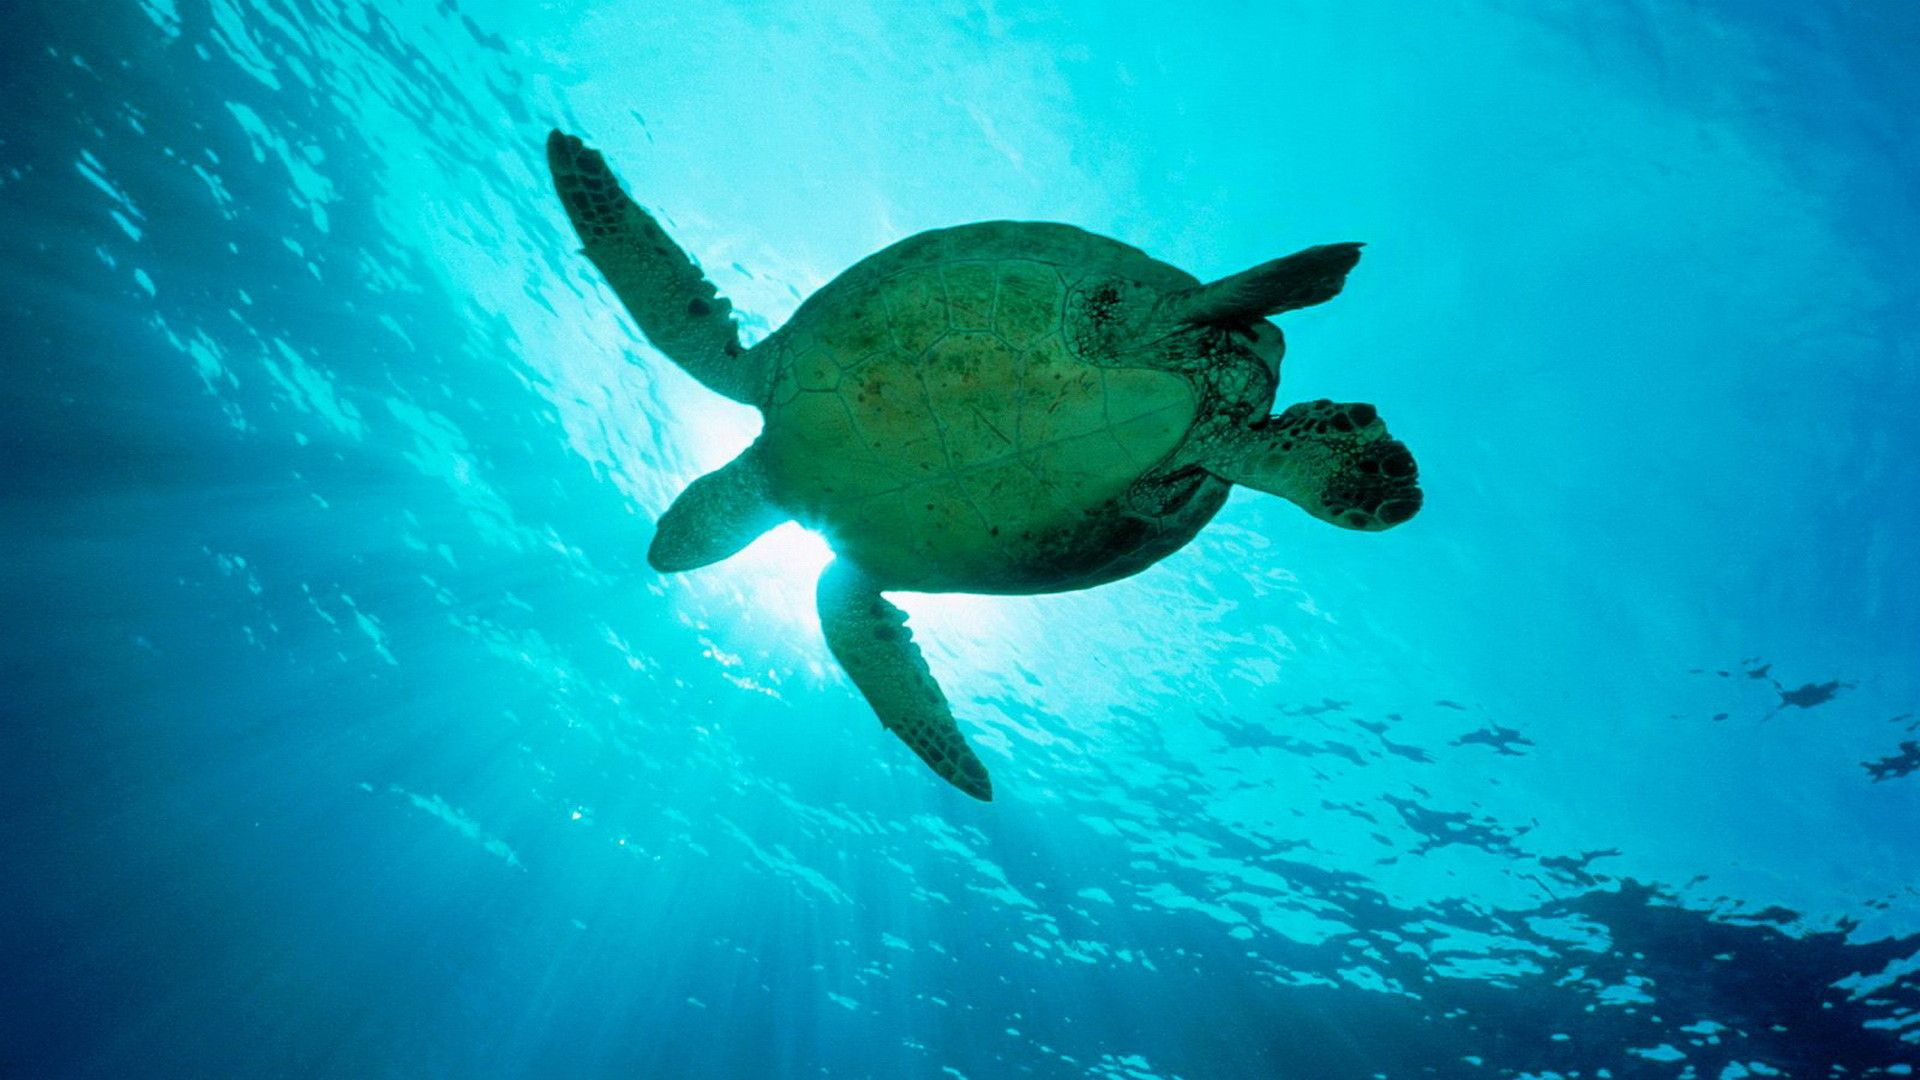 Sea Turtle Laptop Wallpapers Top Free Sea Turtle Laptop Backgrounds Wallpaperaccess